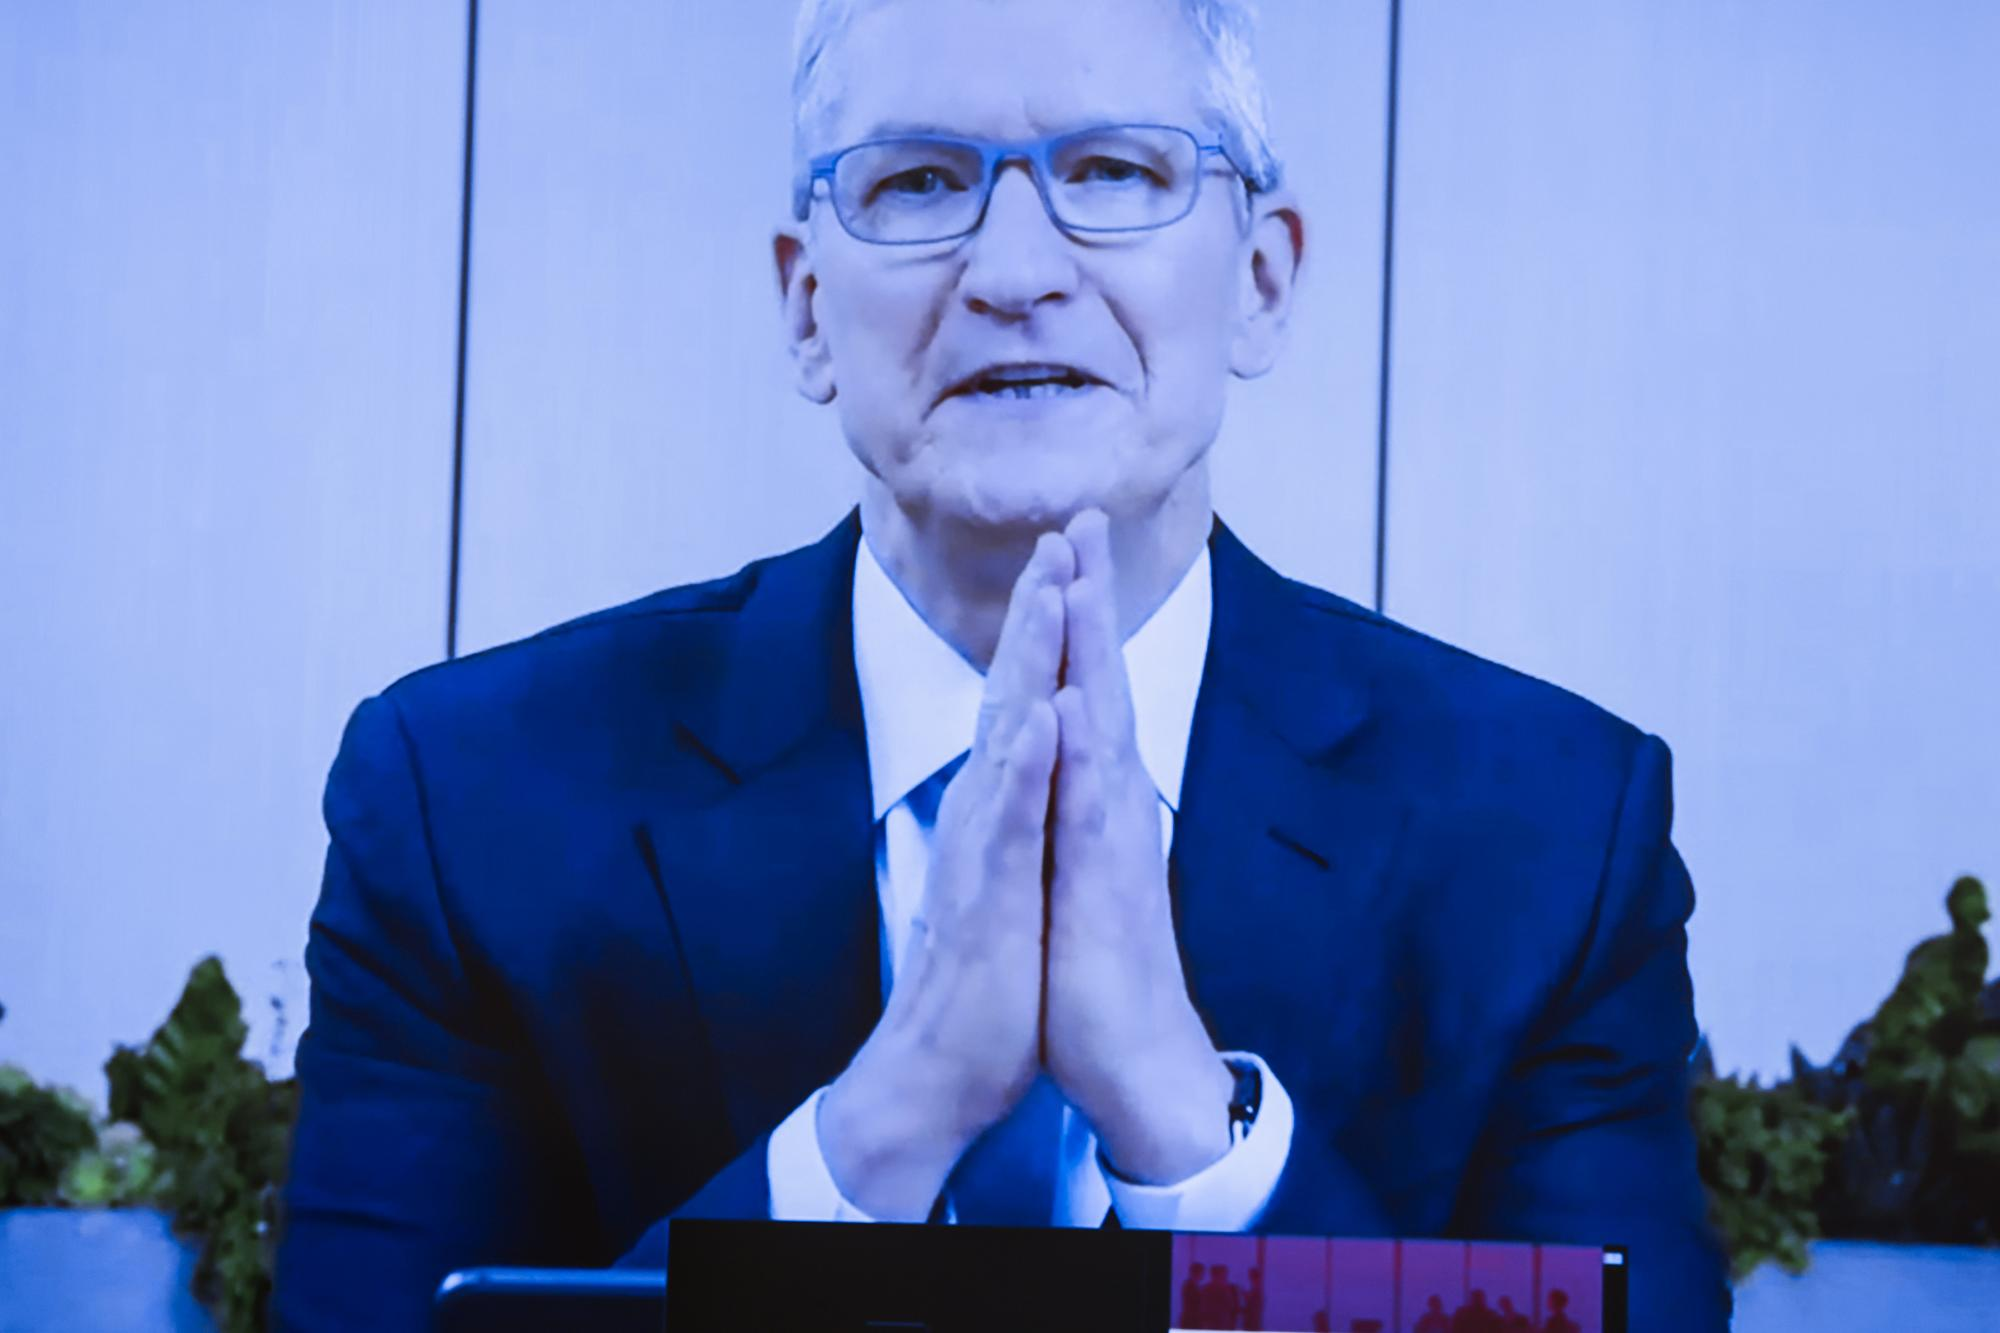 Apple will face a critical test when CEO Tim Cook testifies at the Epic trial – Yahoo Finance